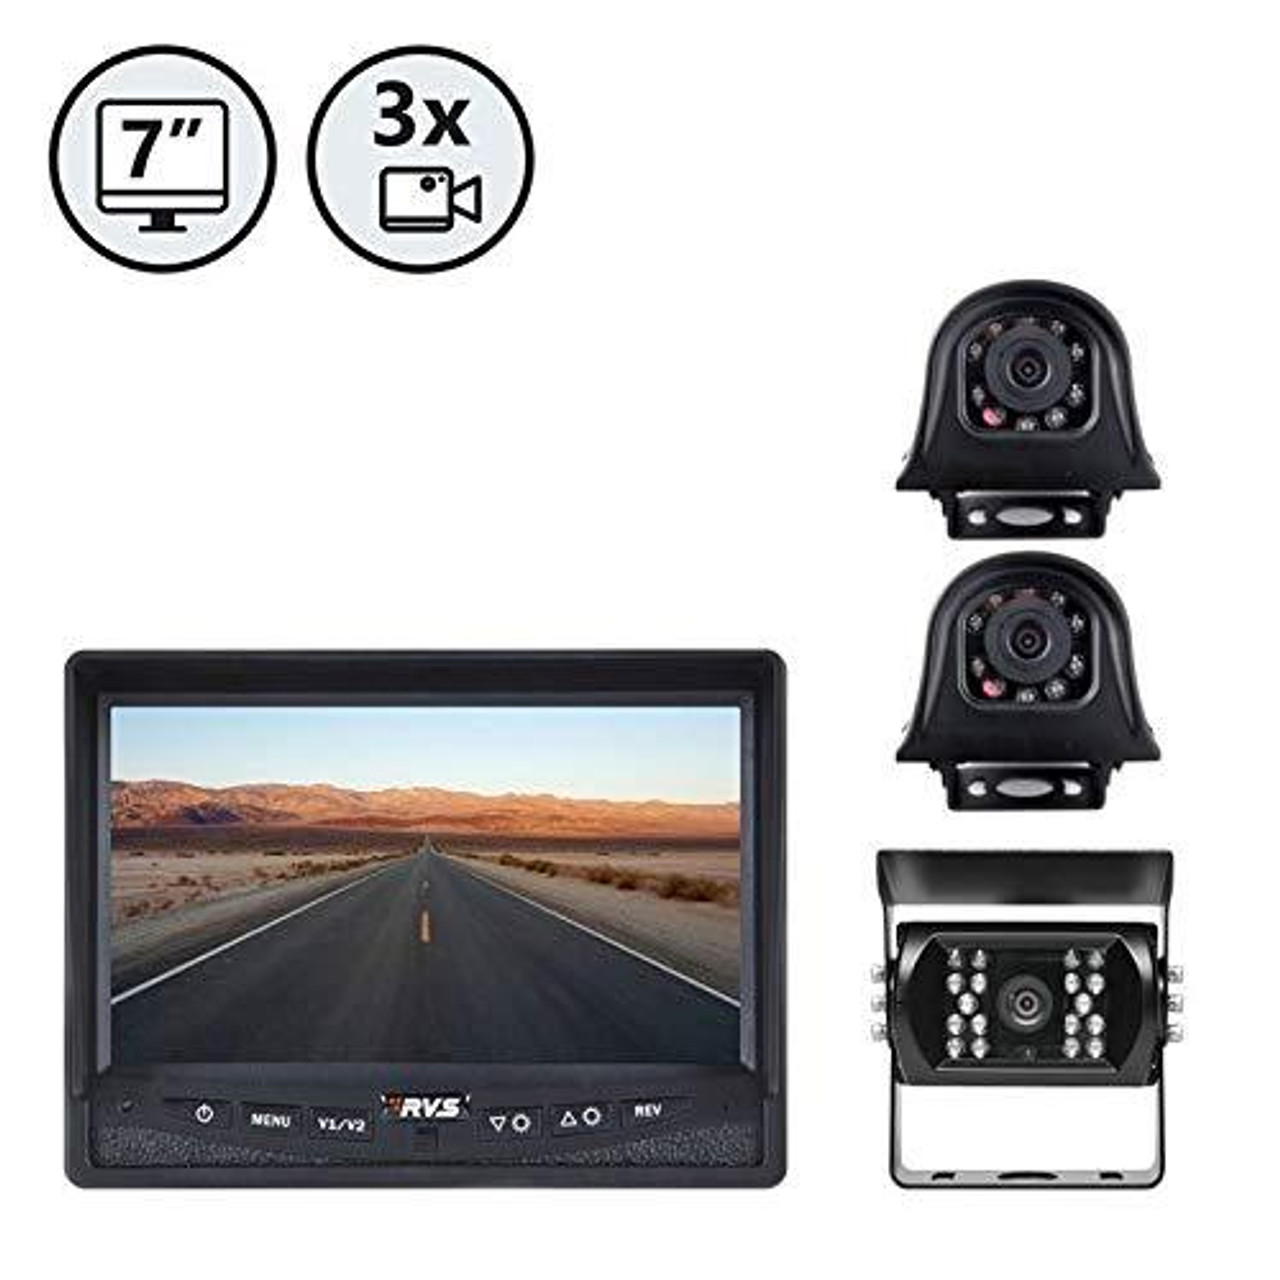 Backup Camera System with Side Cameras (RVS-770616-NM)